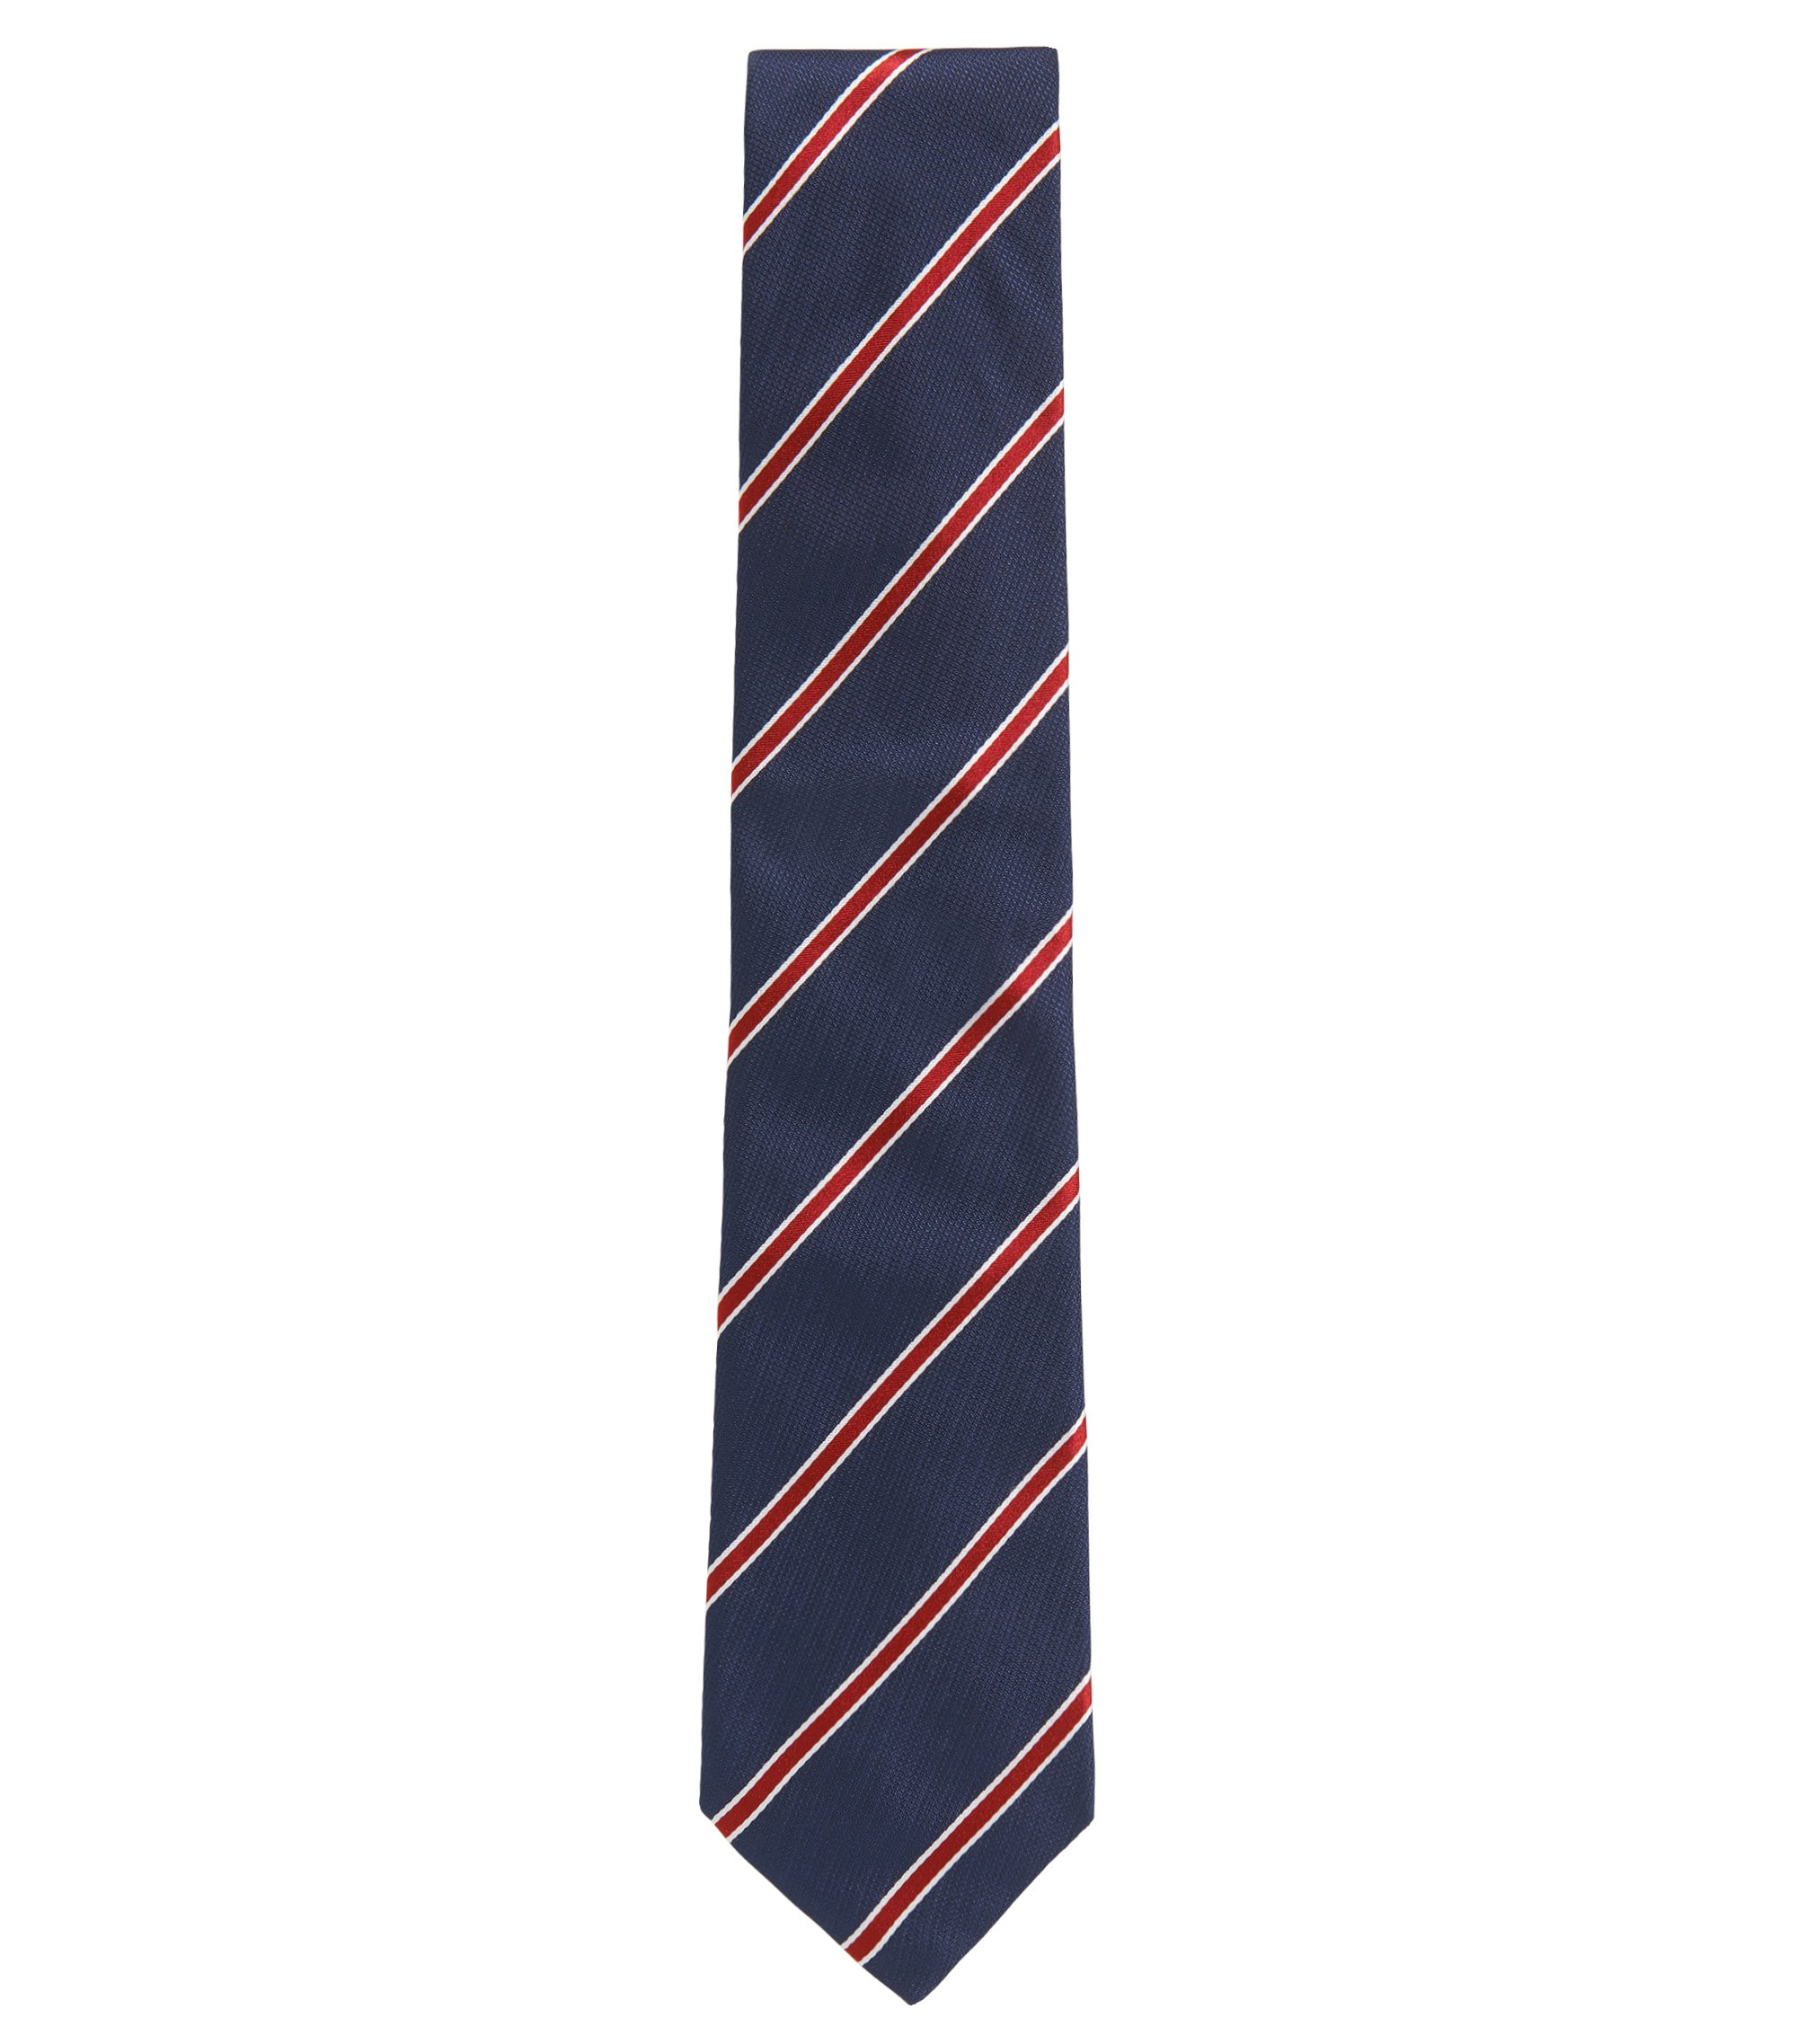 Yarn-dyed diagonal striped tie in silk jacquard, Dark pink